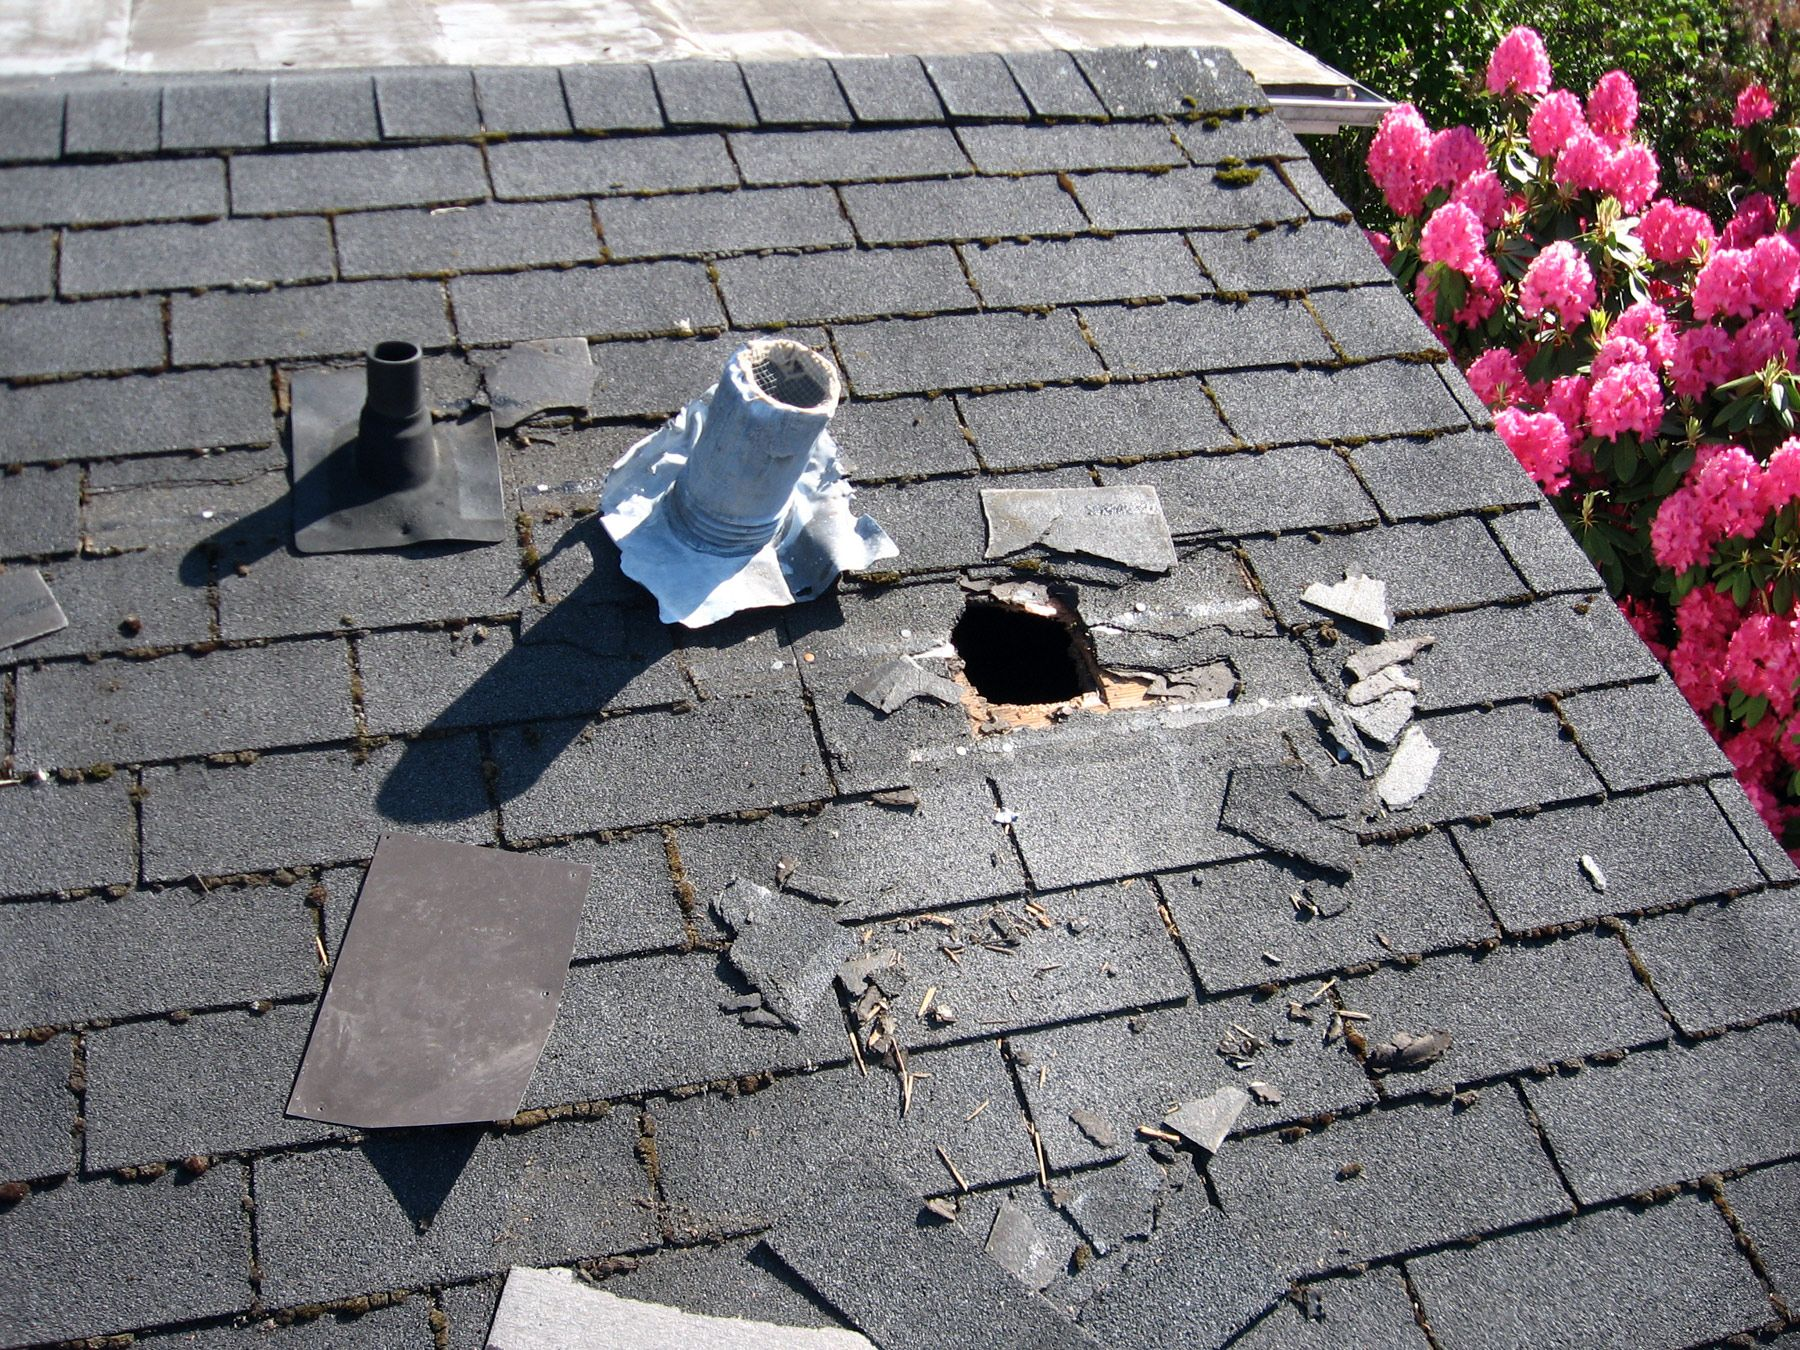 Have You Suffered Storm Damage Give Us A Call And Our Professionals Will Handle It 1 425 448 7083 Emergency Roof Repair Roof Repair Roof Leak Repair